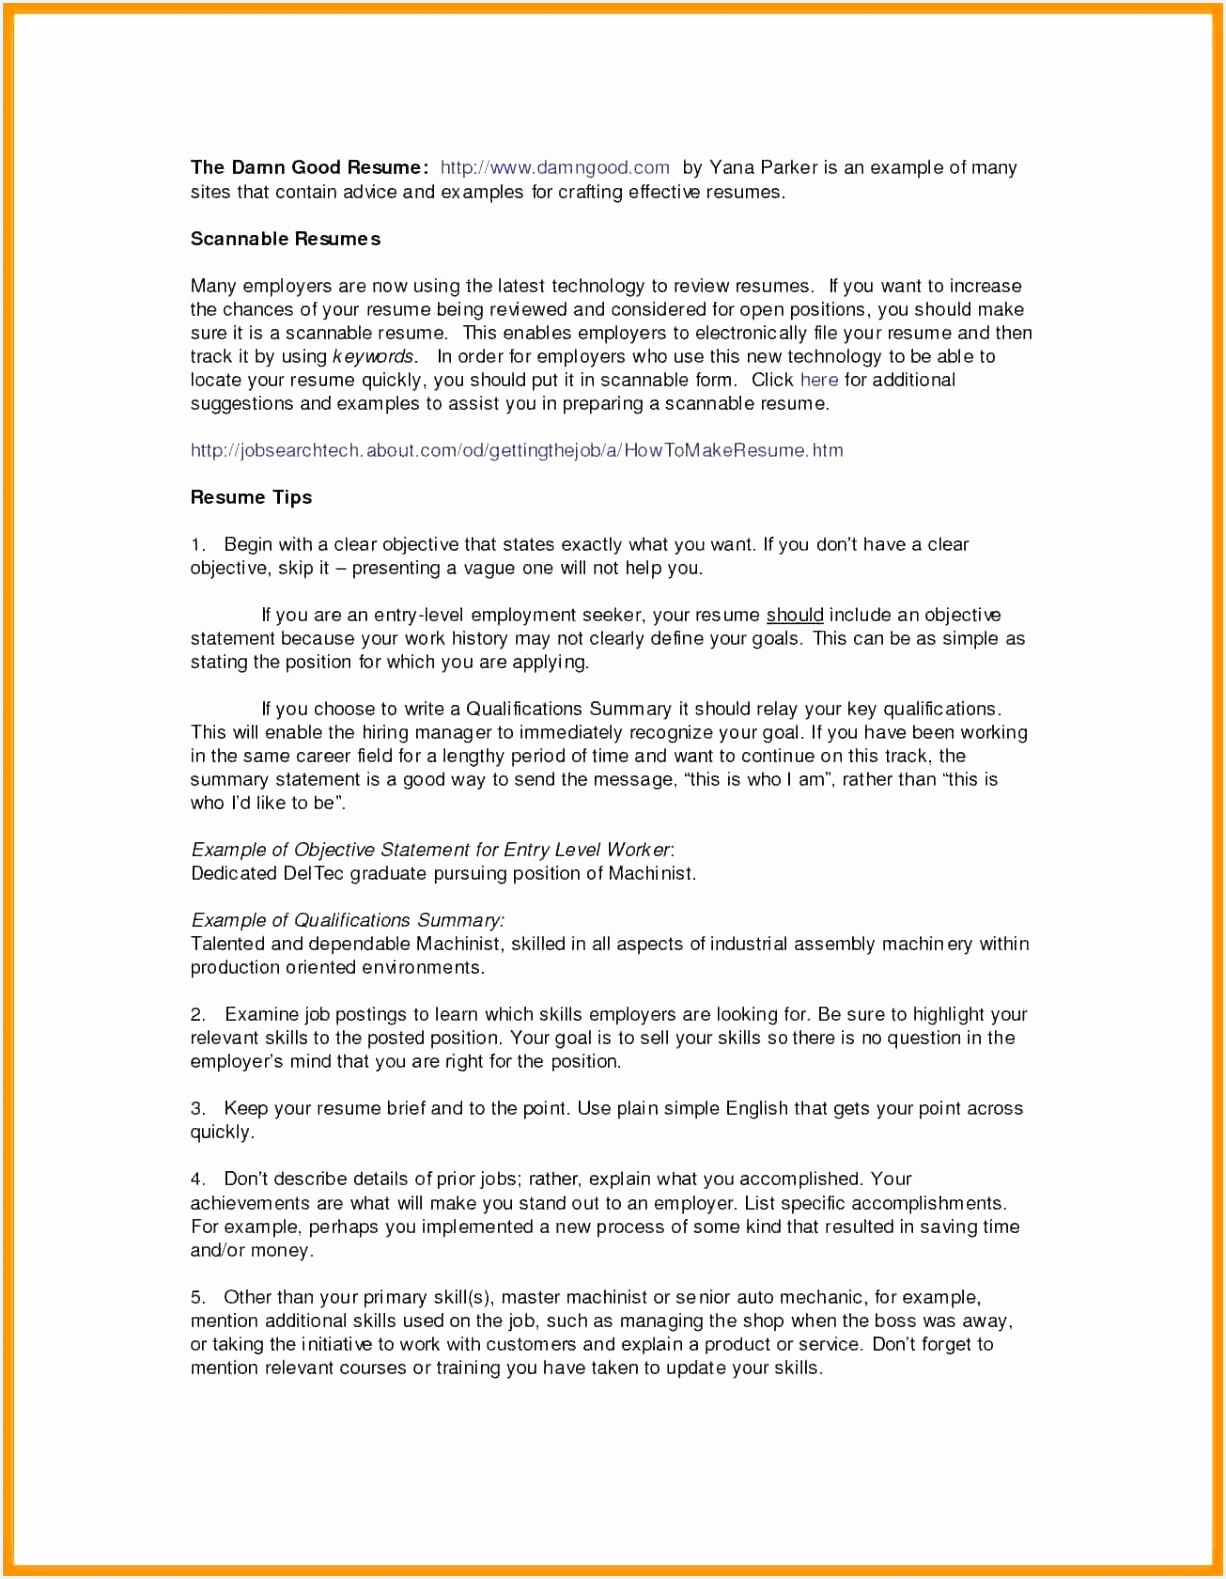 Resume Objectives Samples Lovely Unique Resume for Highschool Students Excellent Resumes 0d High Resume Objectives Related 15791226vTipu